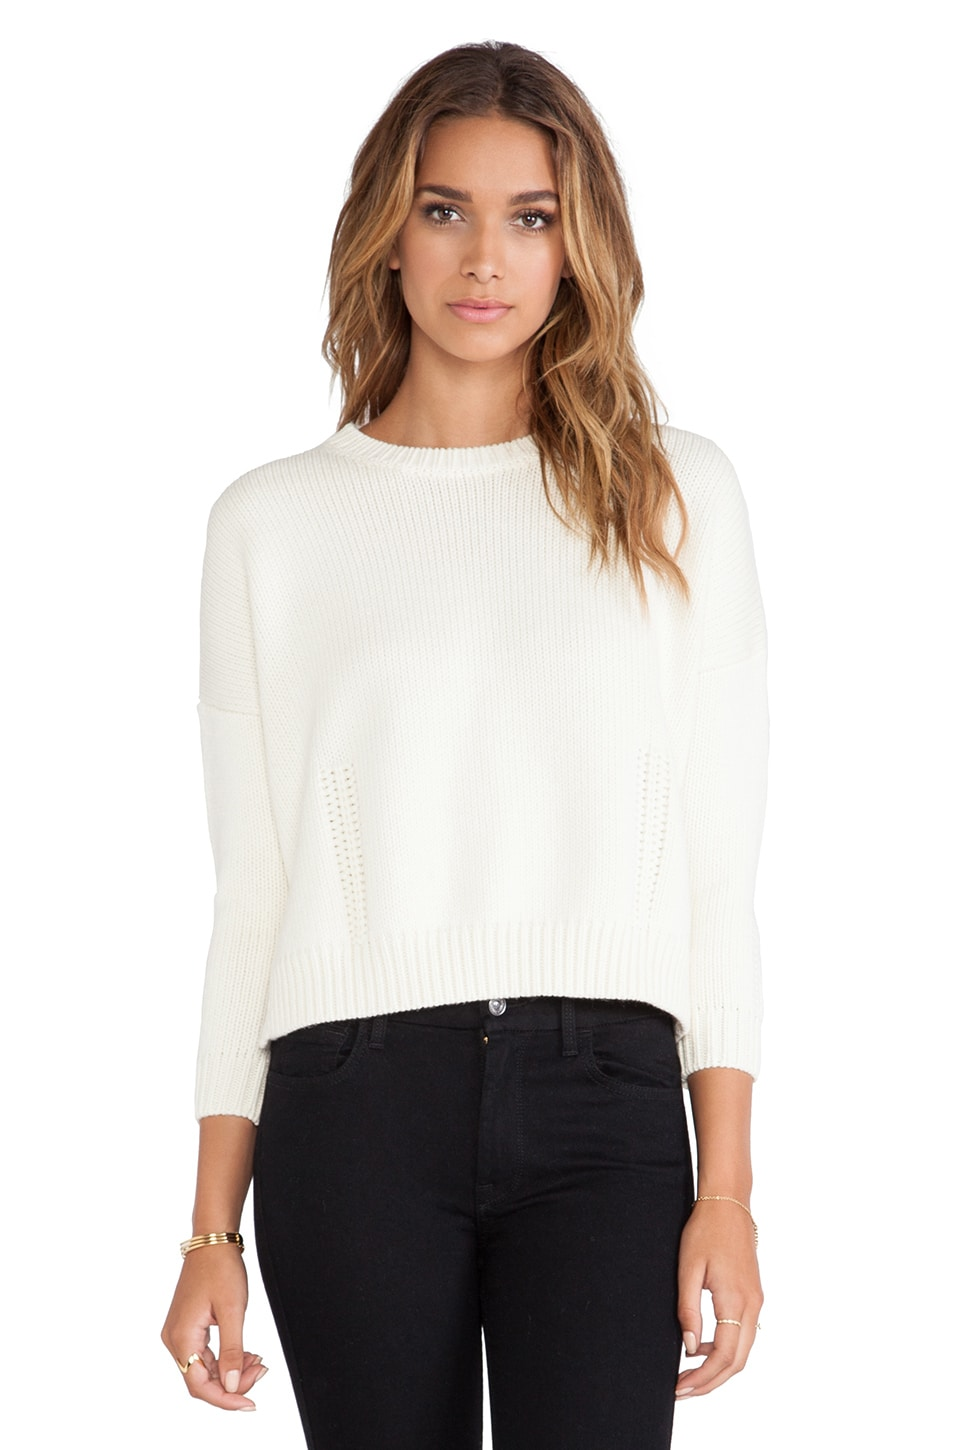 DemyLee Giselle Sweater in Cream